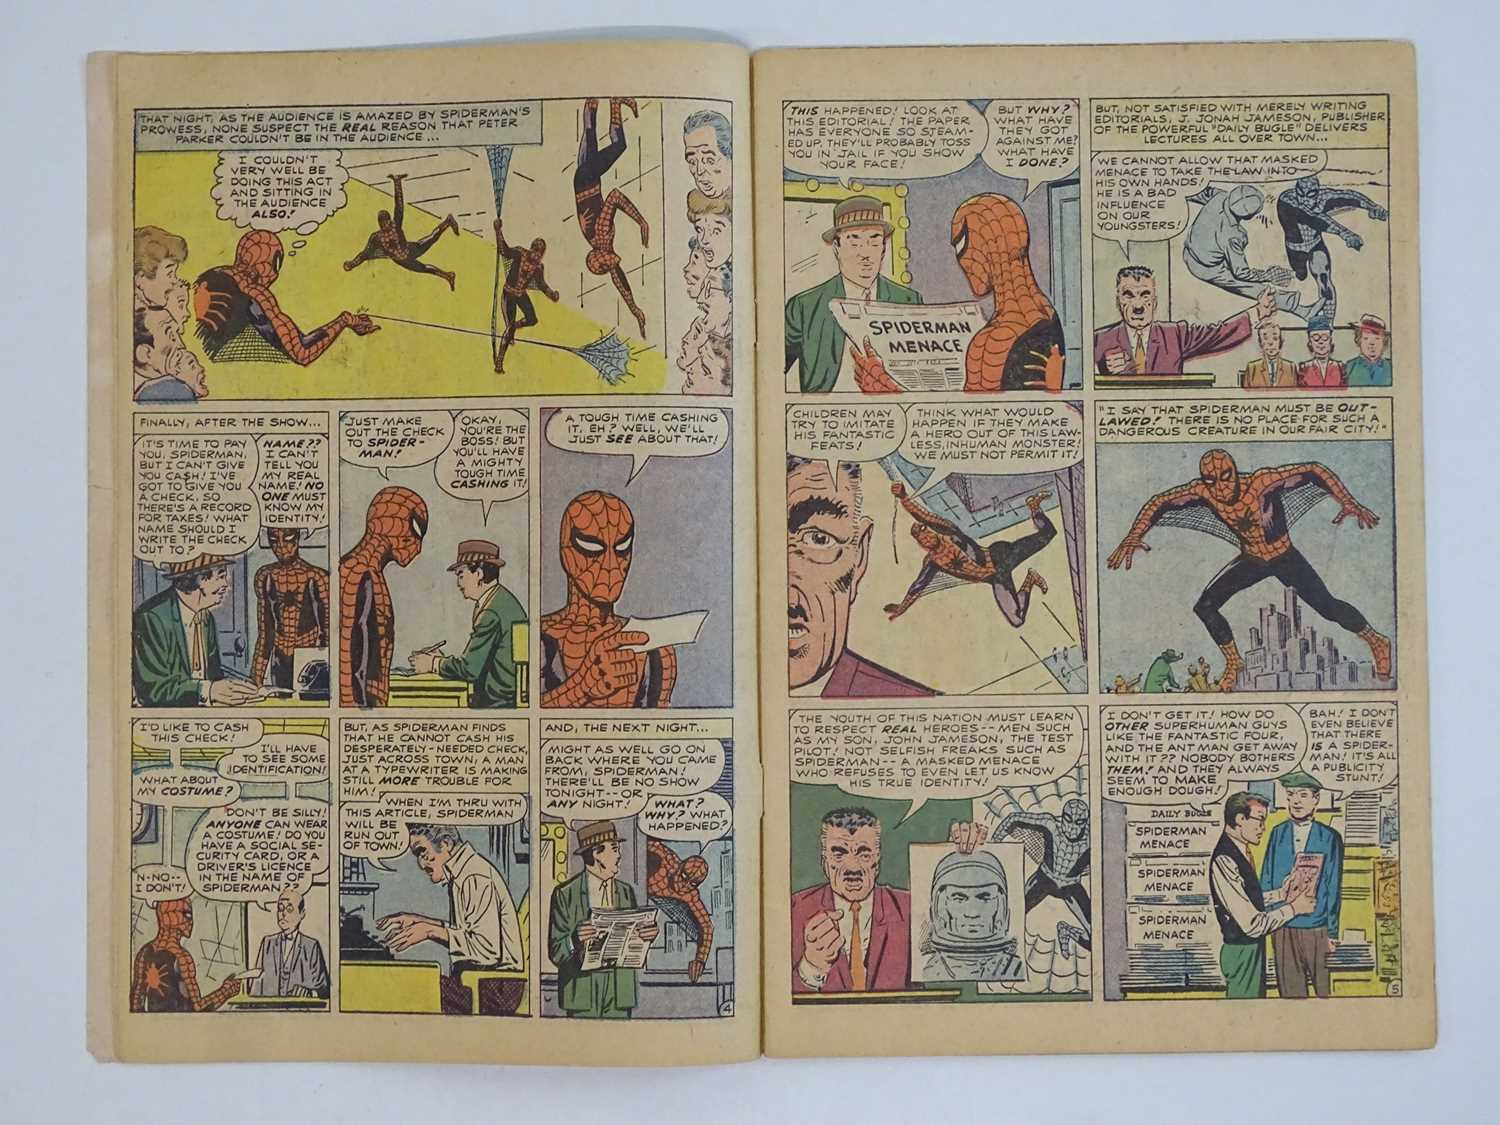 AMAZING SPIDER-MAN #1 - (1963 - MARVEL - UK Price Variant) - First appearance of Spider-Man un his - Image 11 of 27